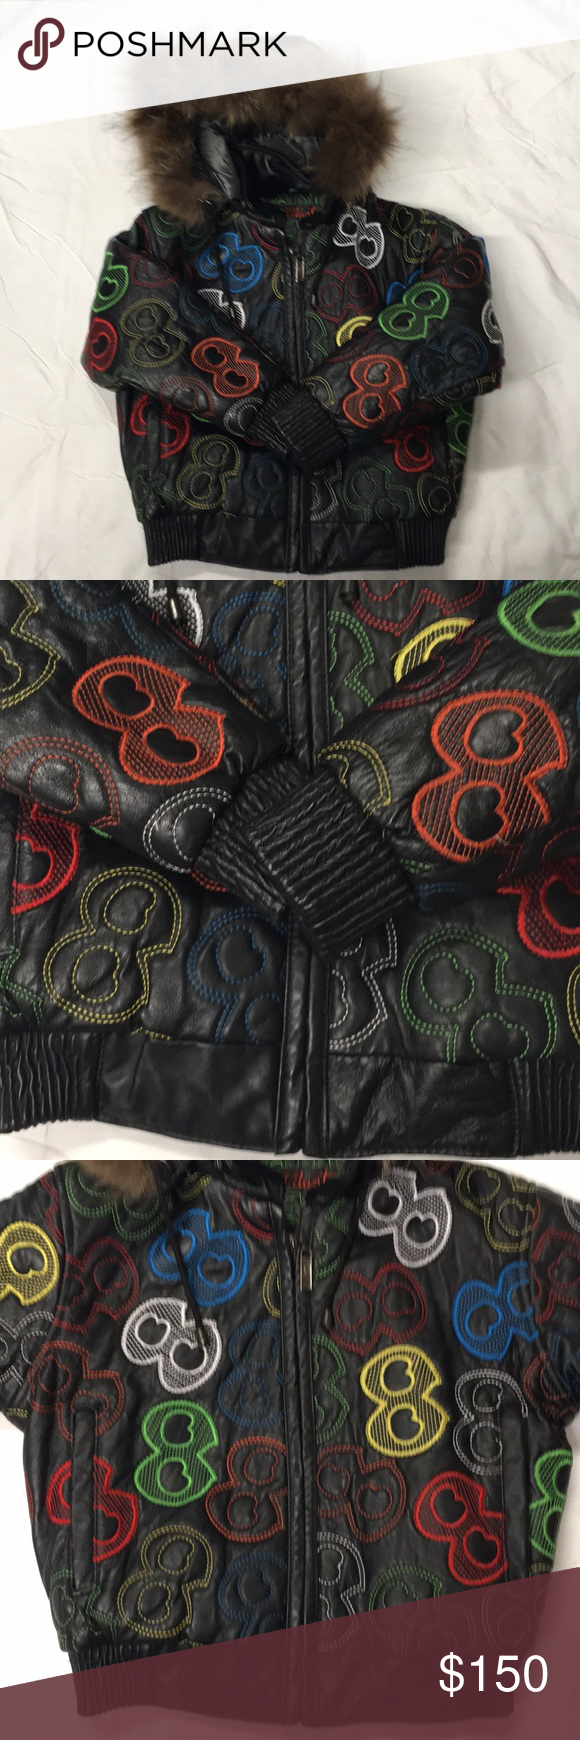 Boys Vilanto Leather Eightball Coat In Good Condition Can Be Worn With Or Without Hood Real Leather Vilanto Jackets Coats Leather Clothes Design Fashion [ 1740 x 580 Pixel ]